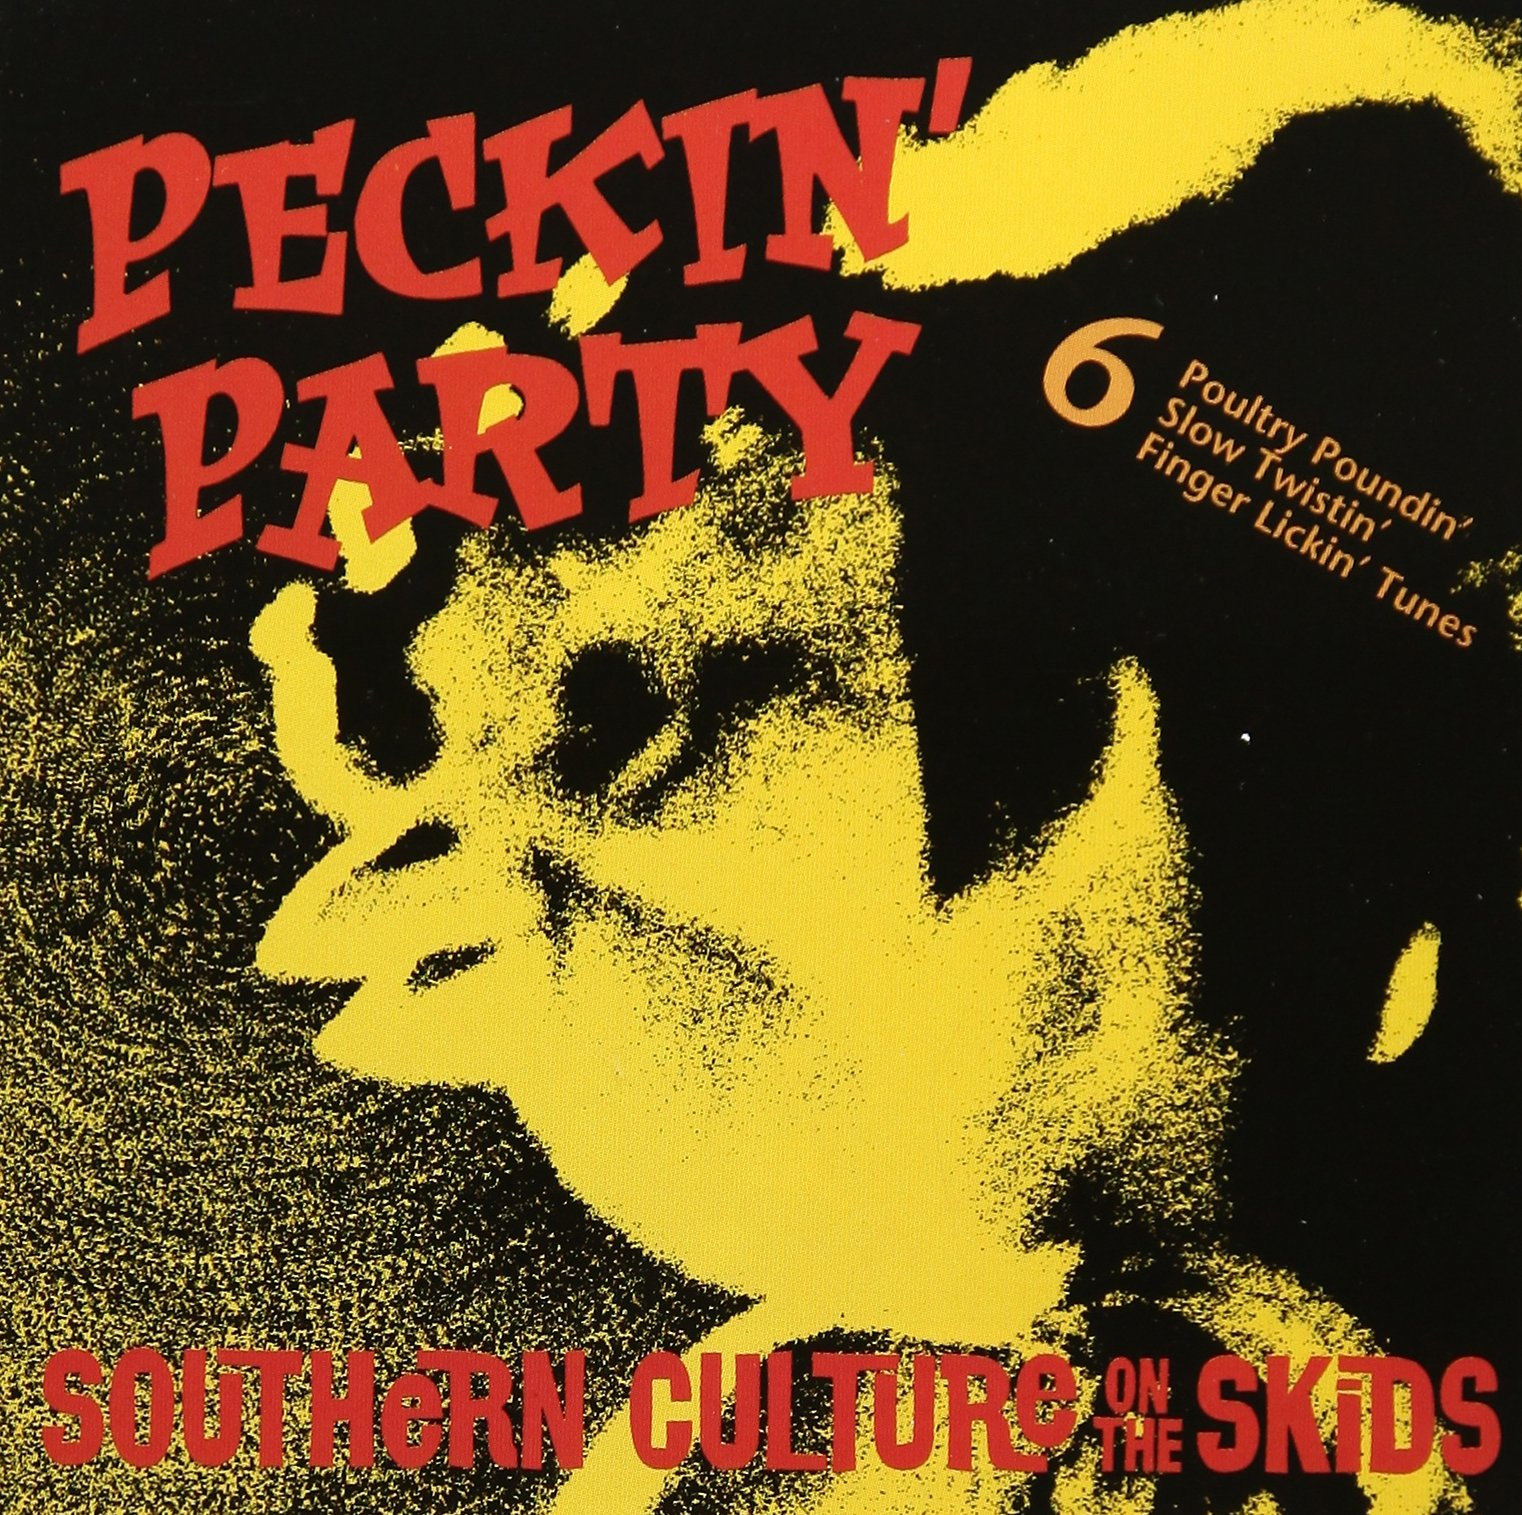 Peckin' Party by Safe House